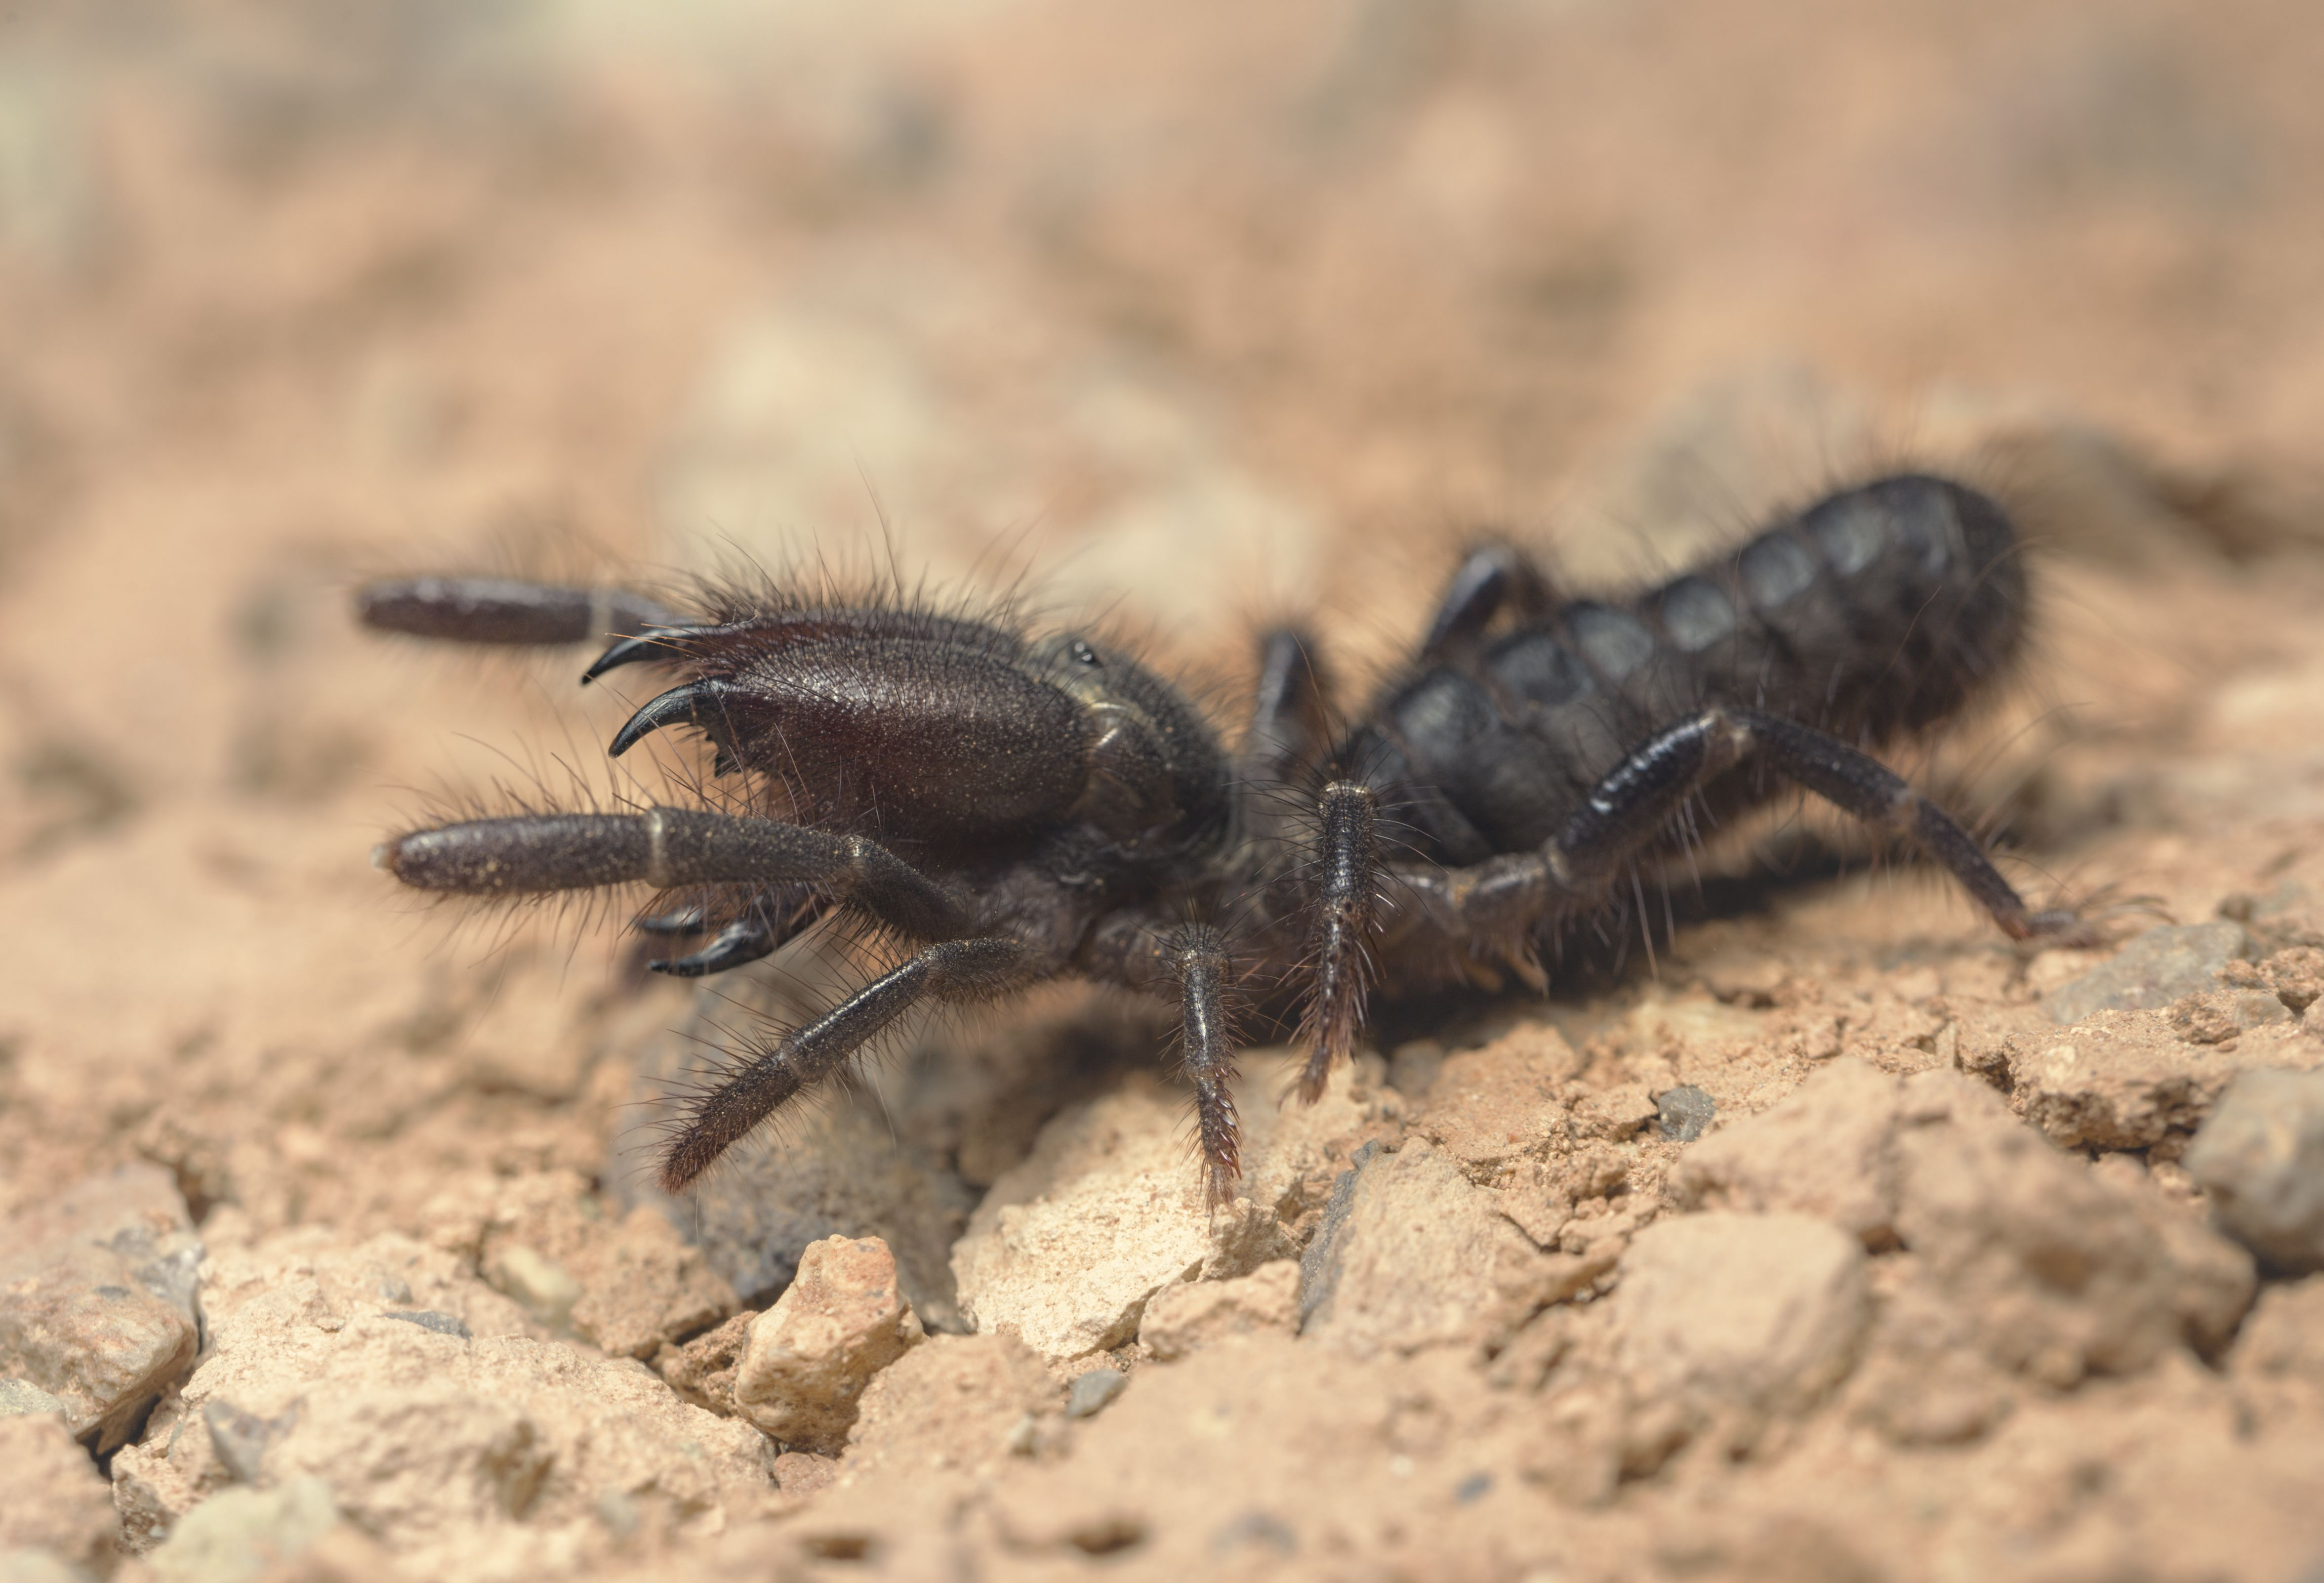 Wild black camel spider hunting at night in Morocco.